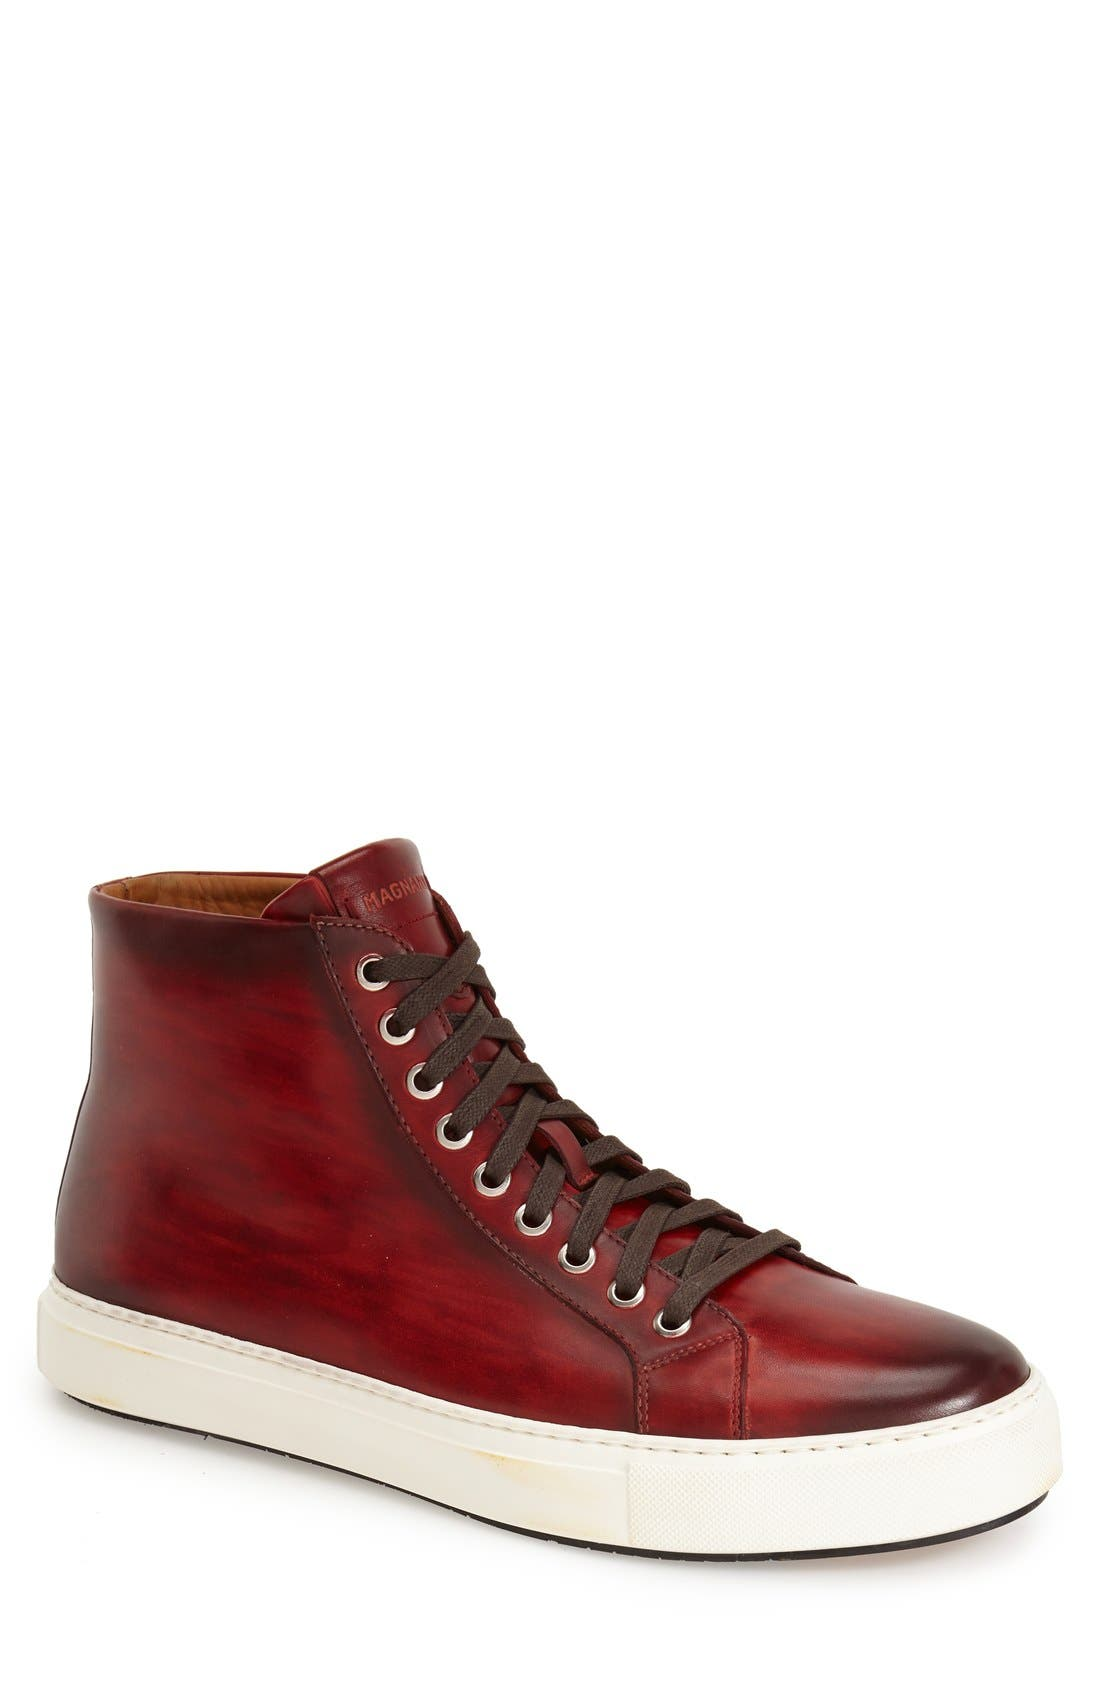 Brando High Top Sneaker,                         Main,                         color, RED